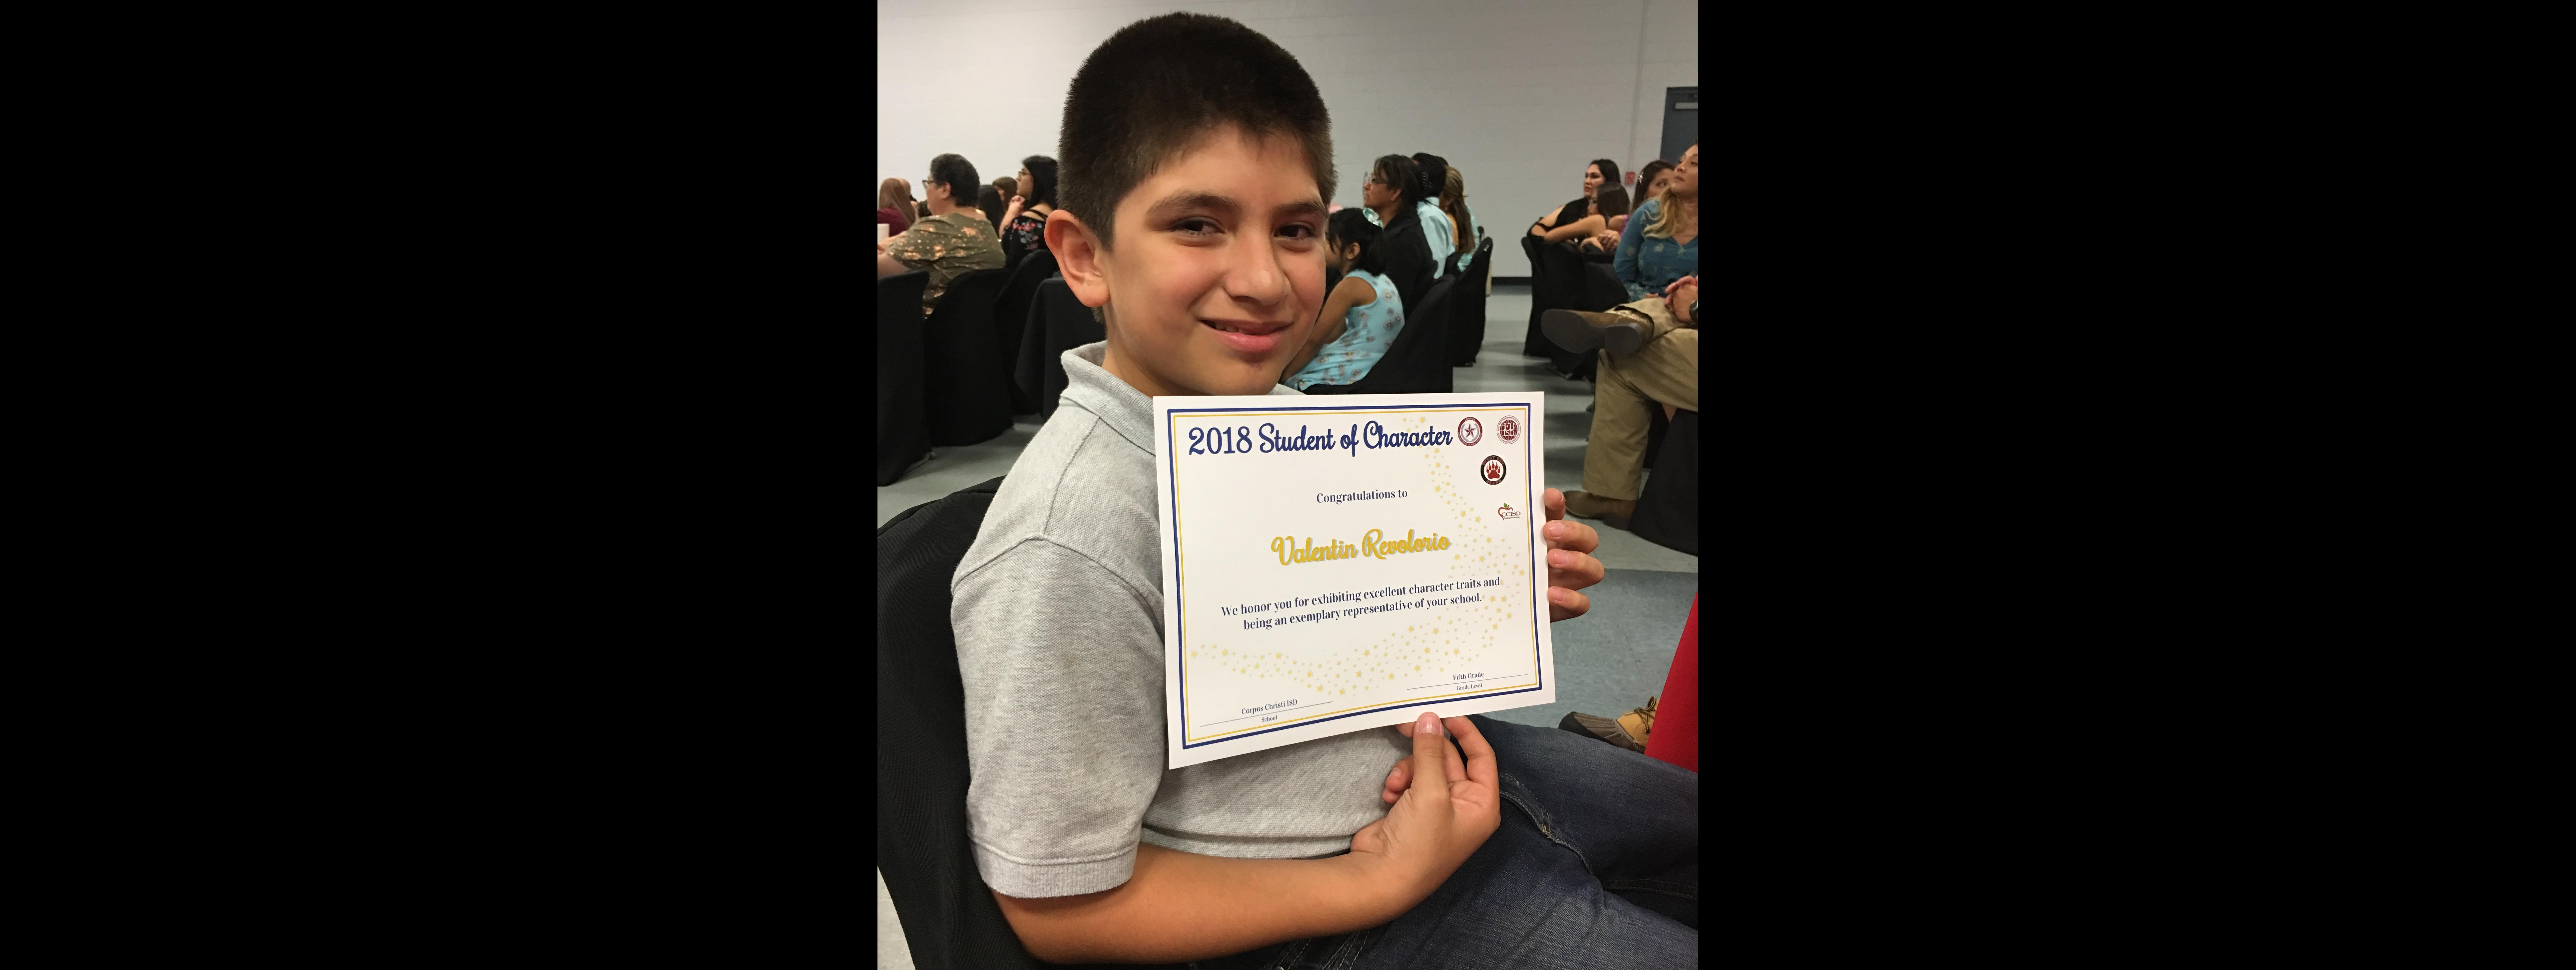 CCISD Student of Character